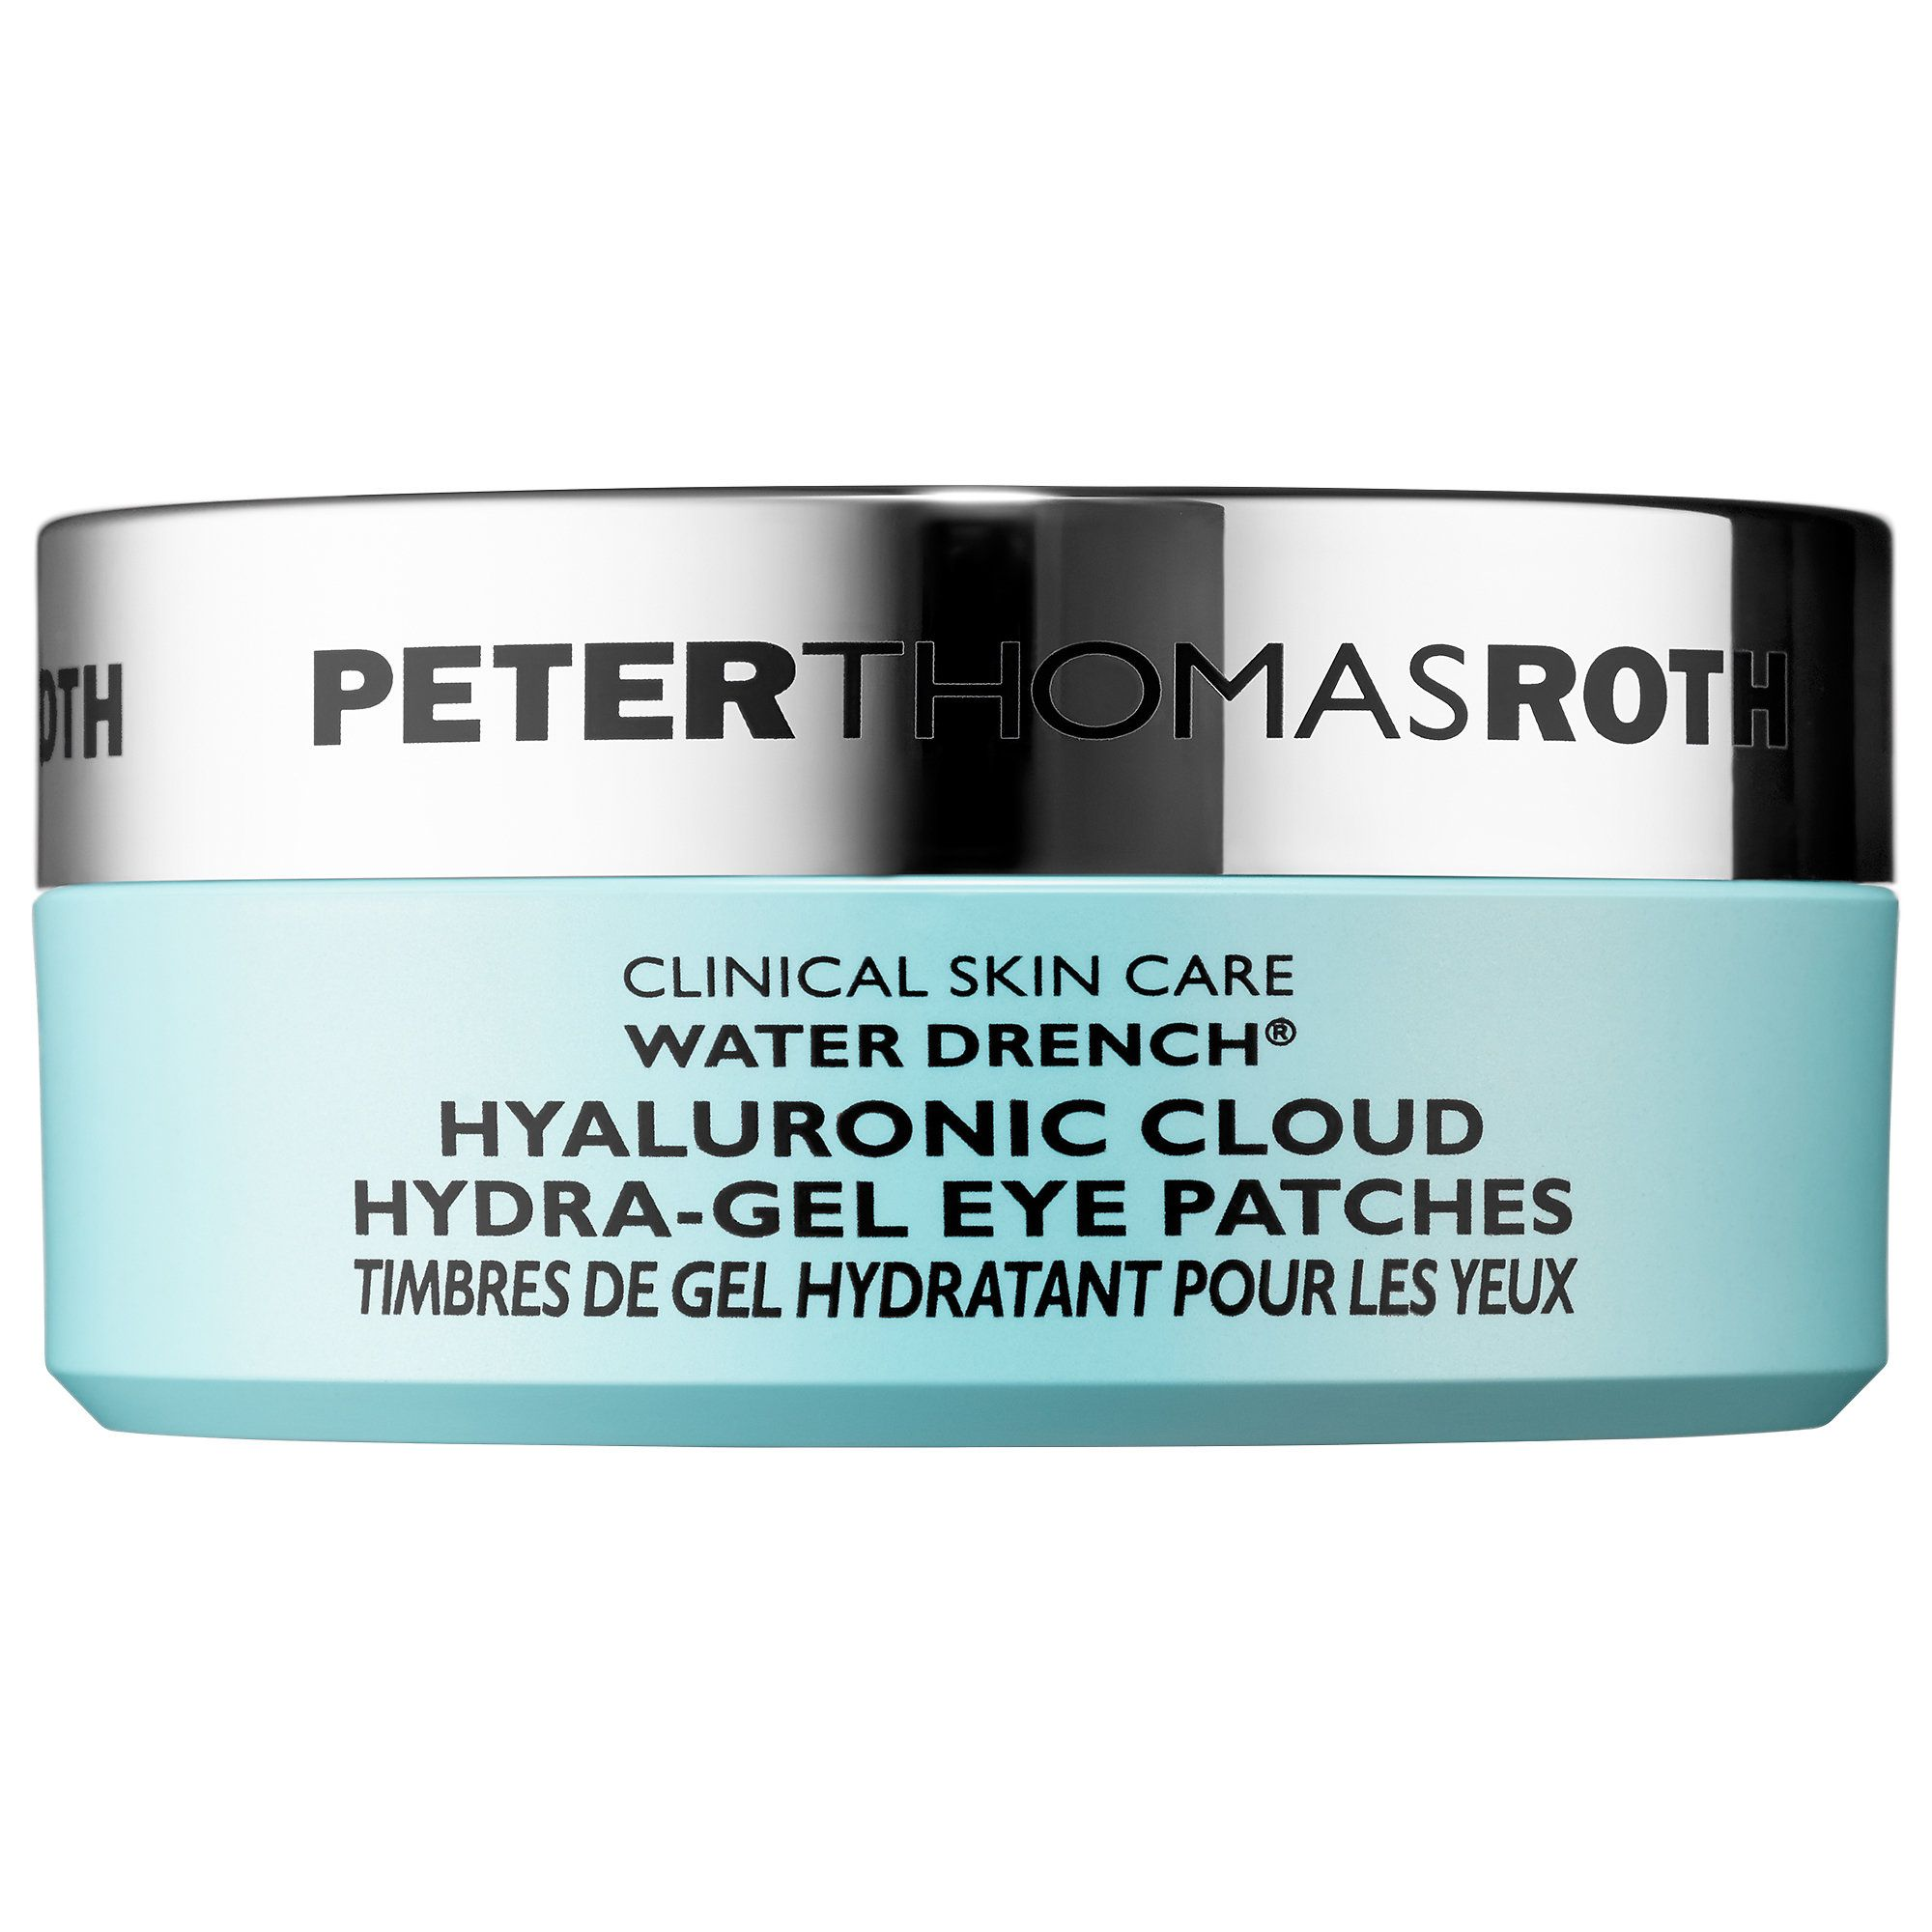 Water Drench Hyaluronic Cloud HydraGel Eye Patches